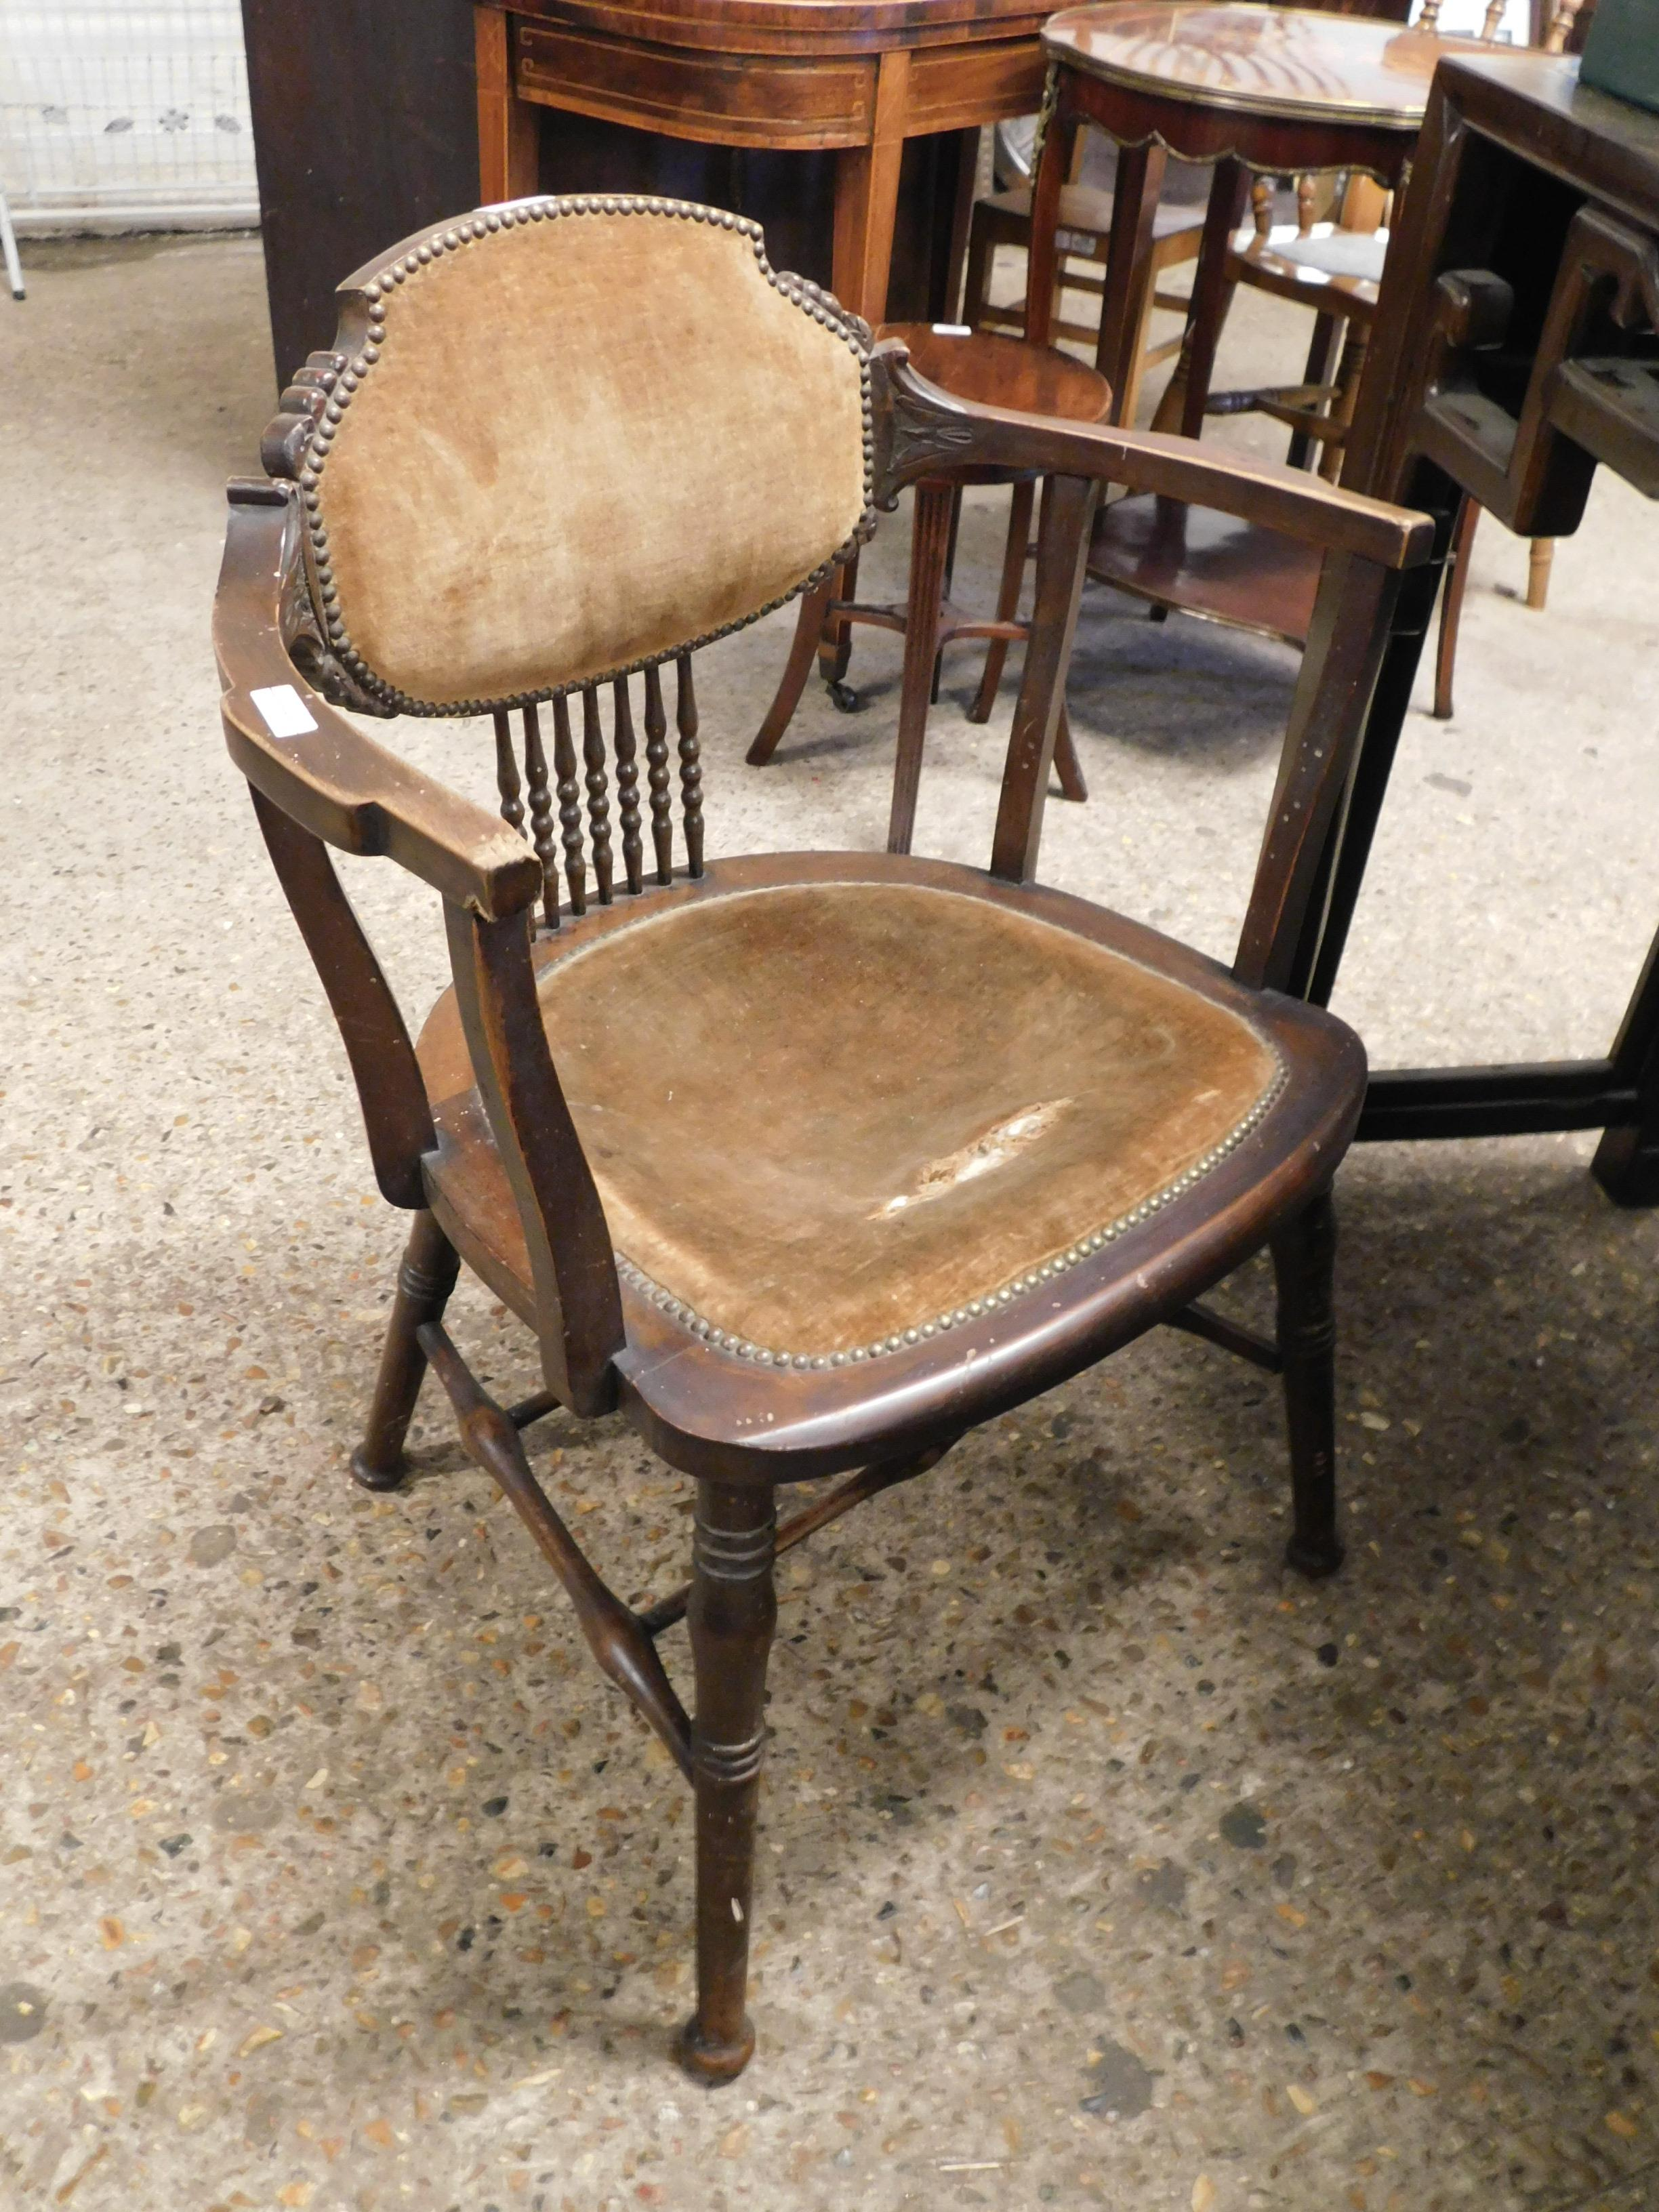 Lot 141 - EDWARDIAN MAHOGANY FRAMED ARMCHAIR WITH UPHOLSTERED SEAT AND BACK WITH SPINDLE DETAIL